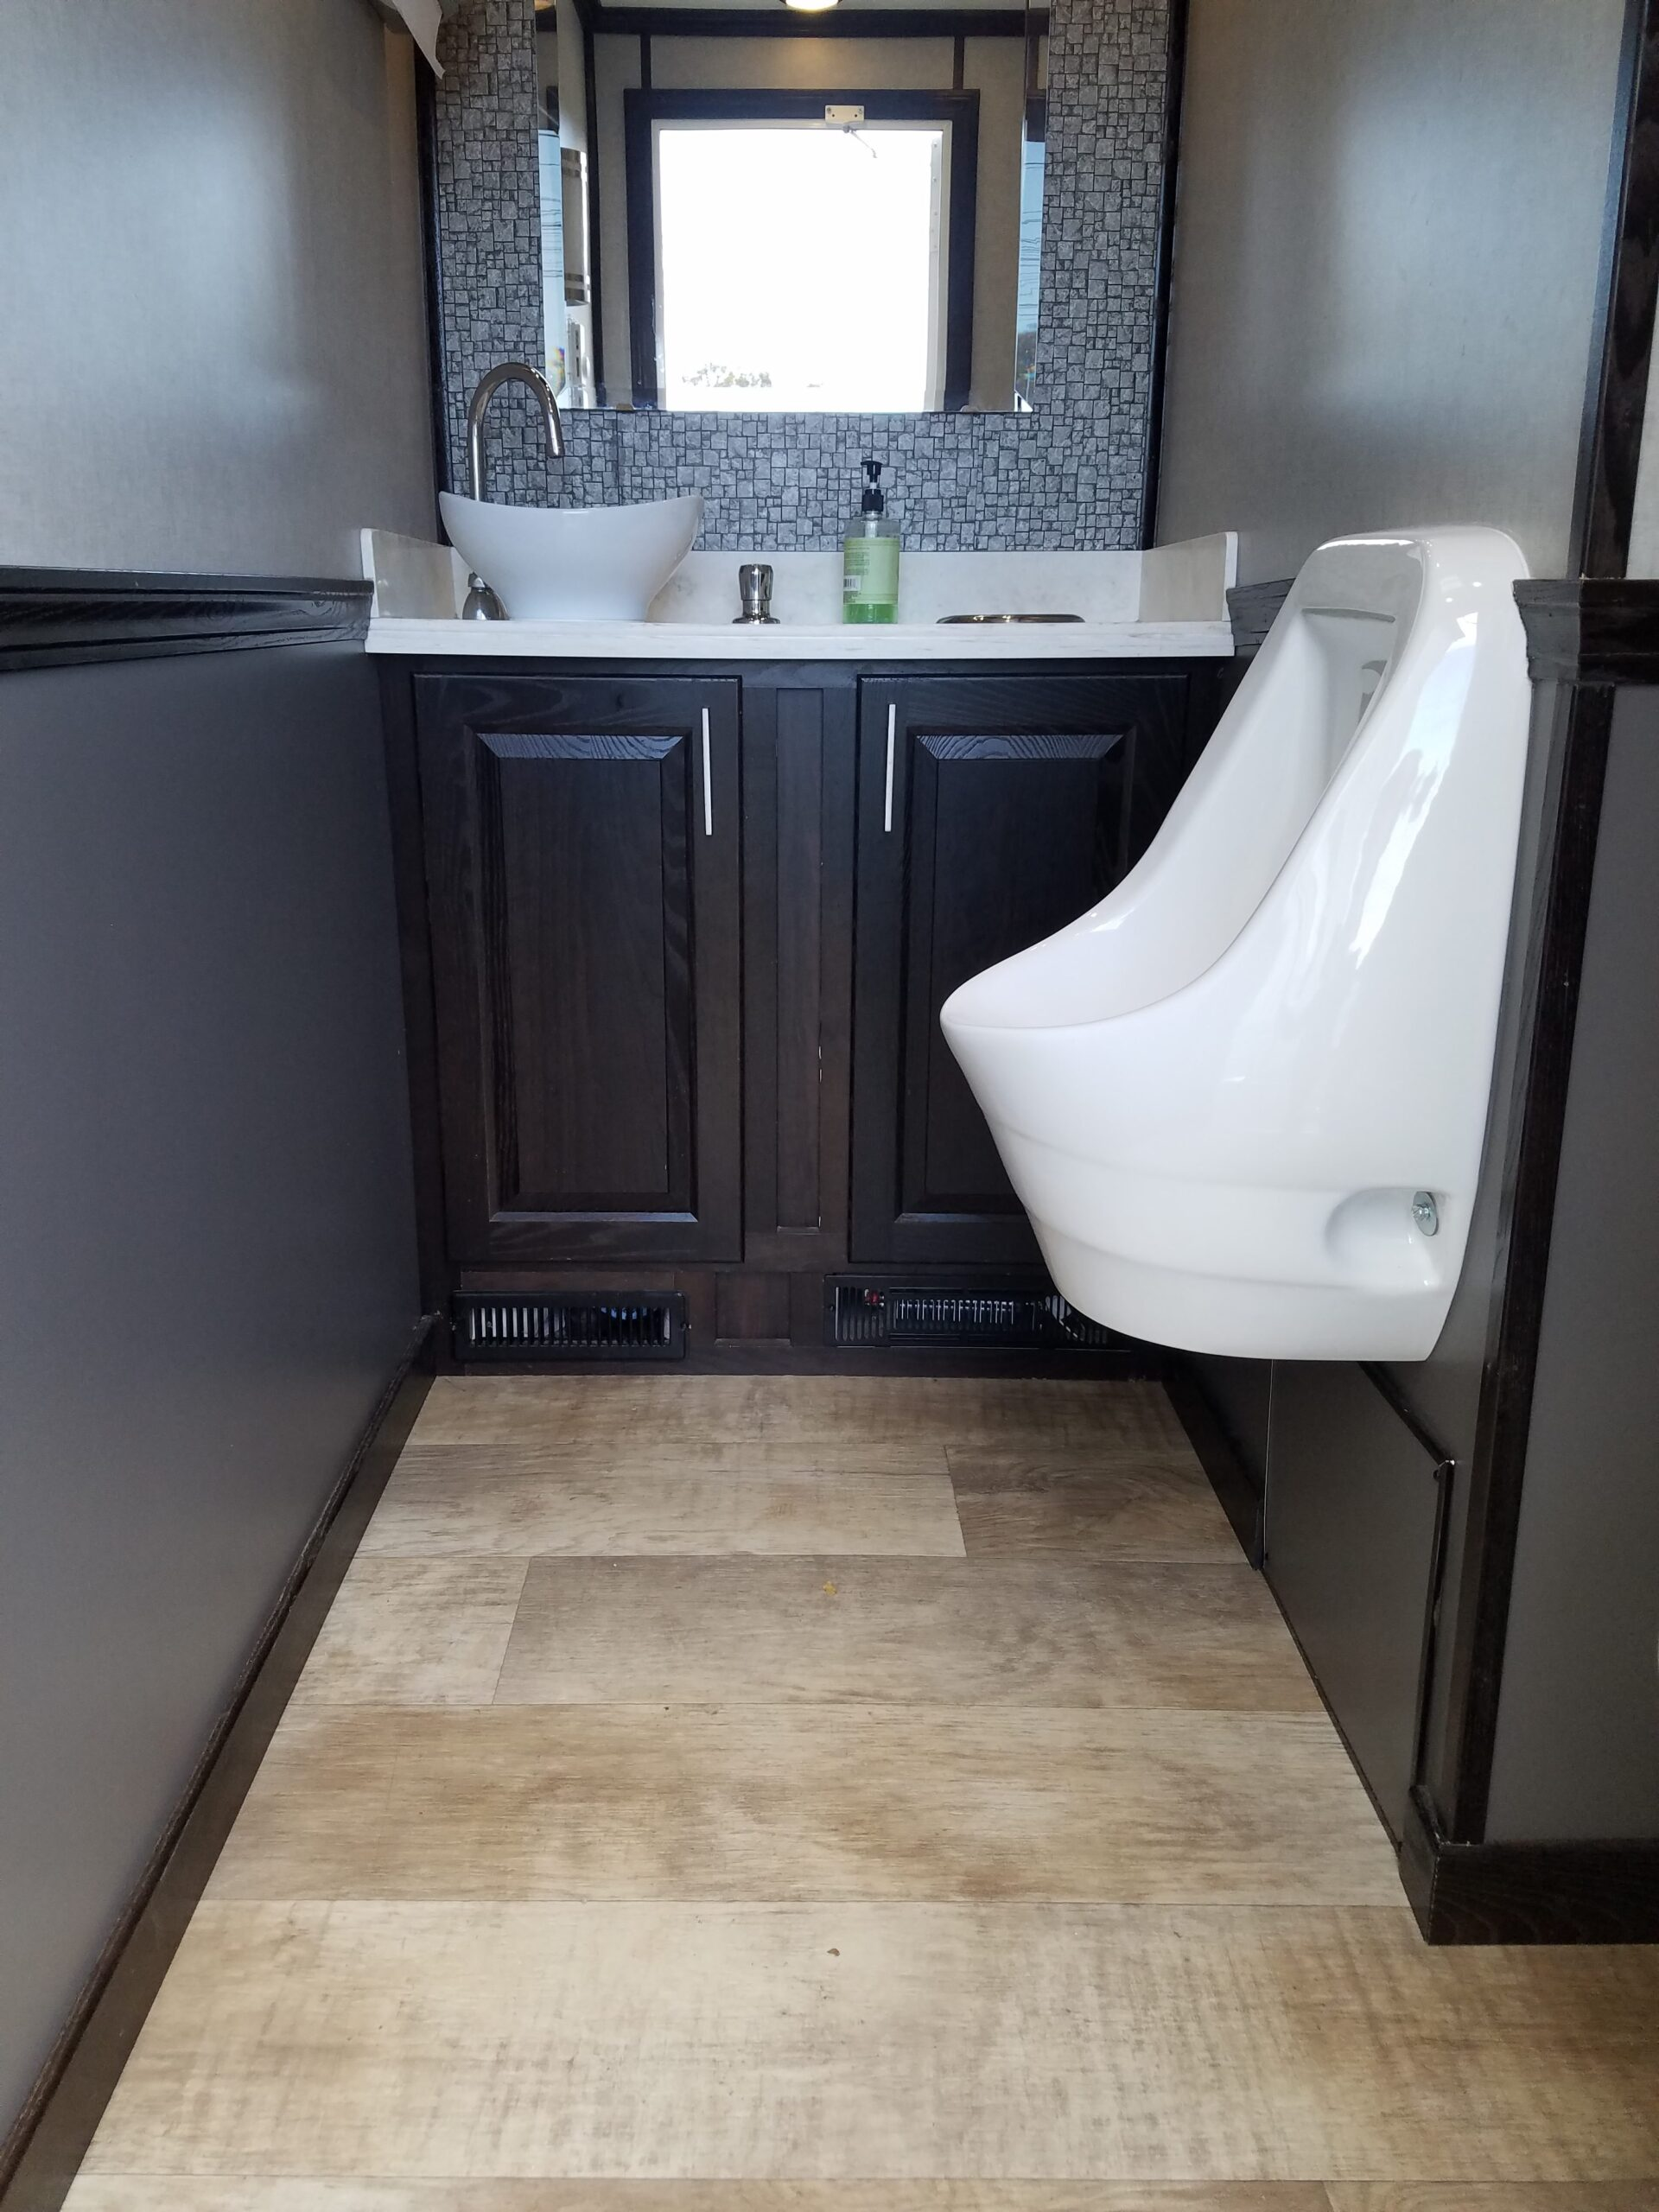 Zoomed out inside view of male restroom station with a mirror, a urinal and a sink